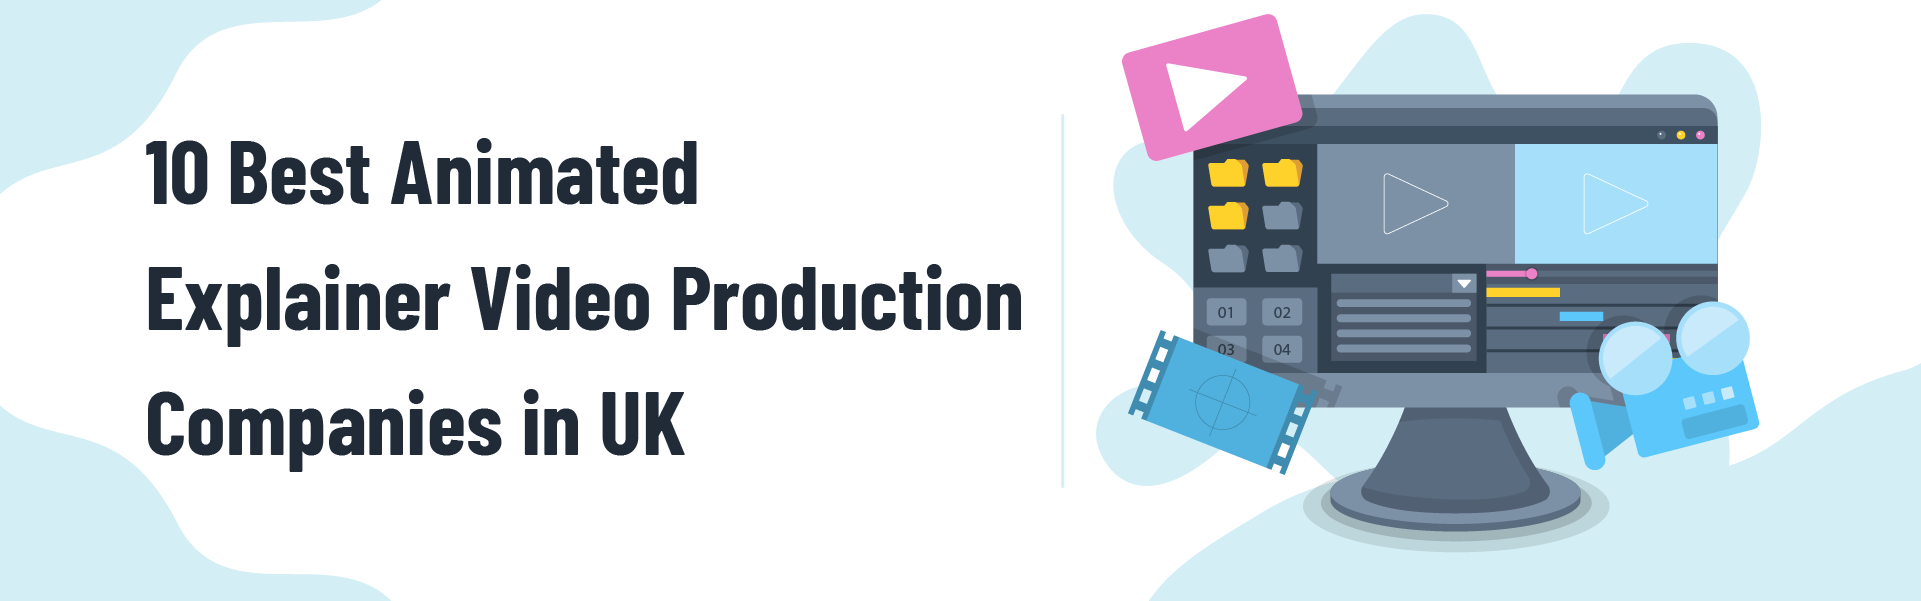 You are currently viewing 10 Best Animated Explainer Video Production Companies in the UK